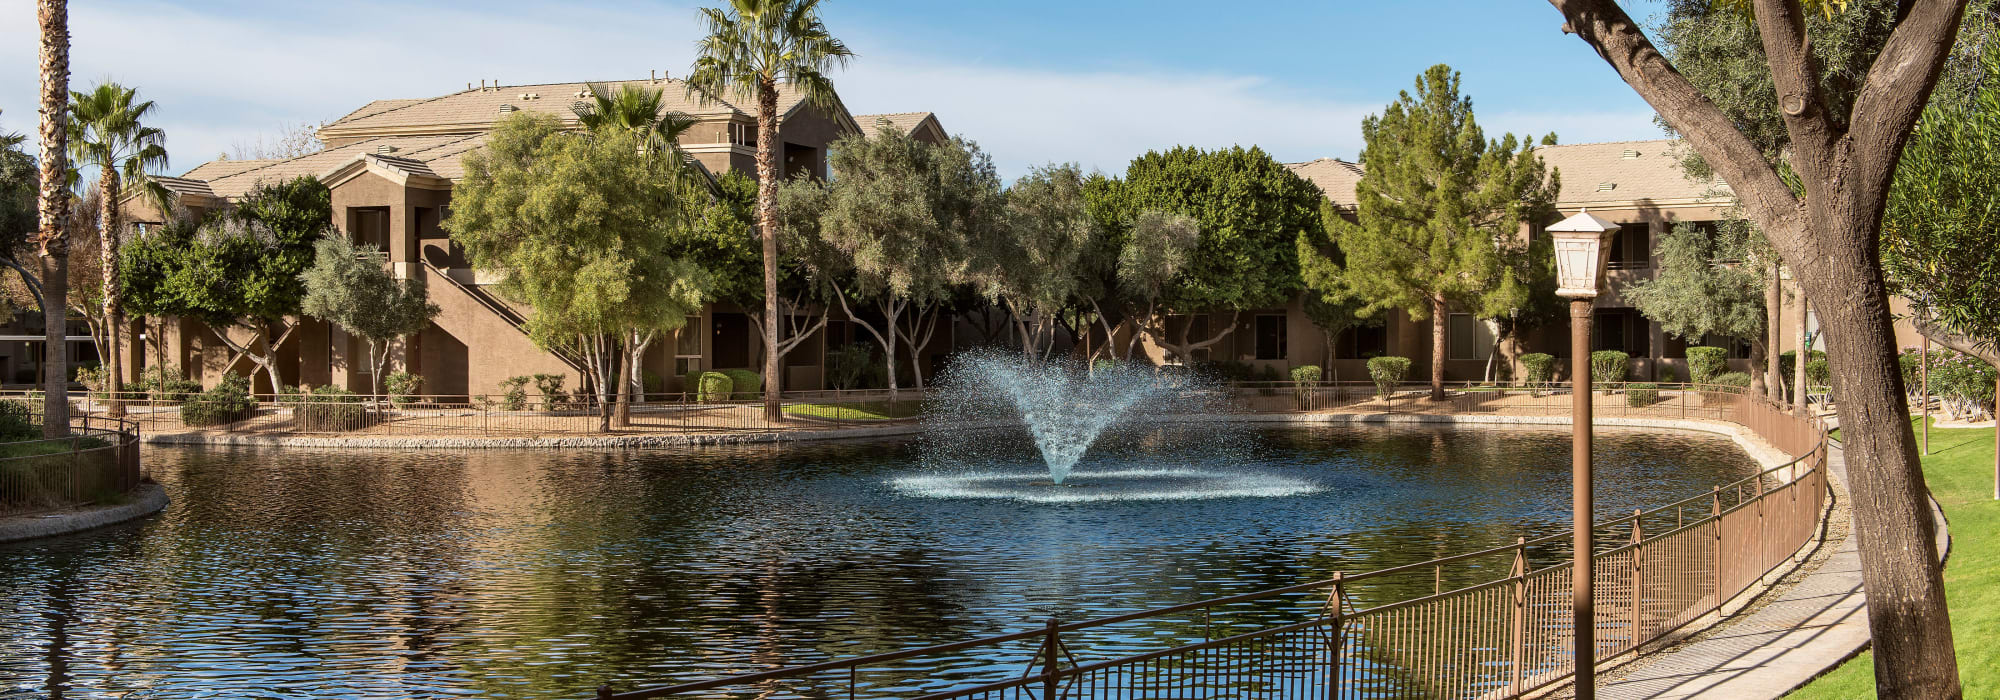 View of the pond at Laguna at Arrowhead Ranch in Glendale, Arizona